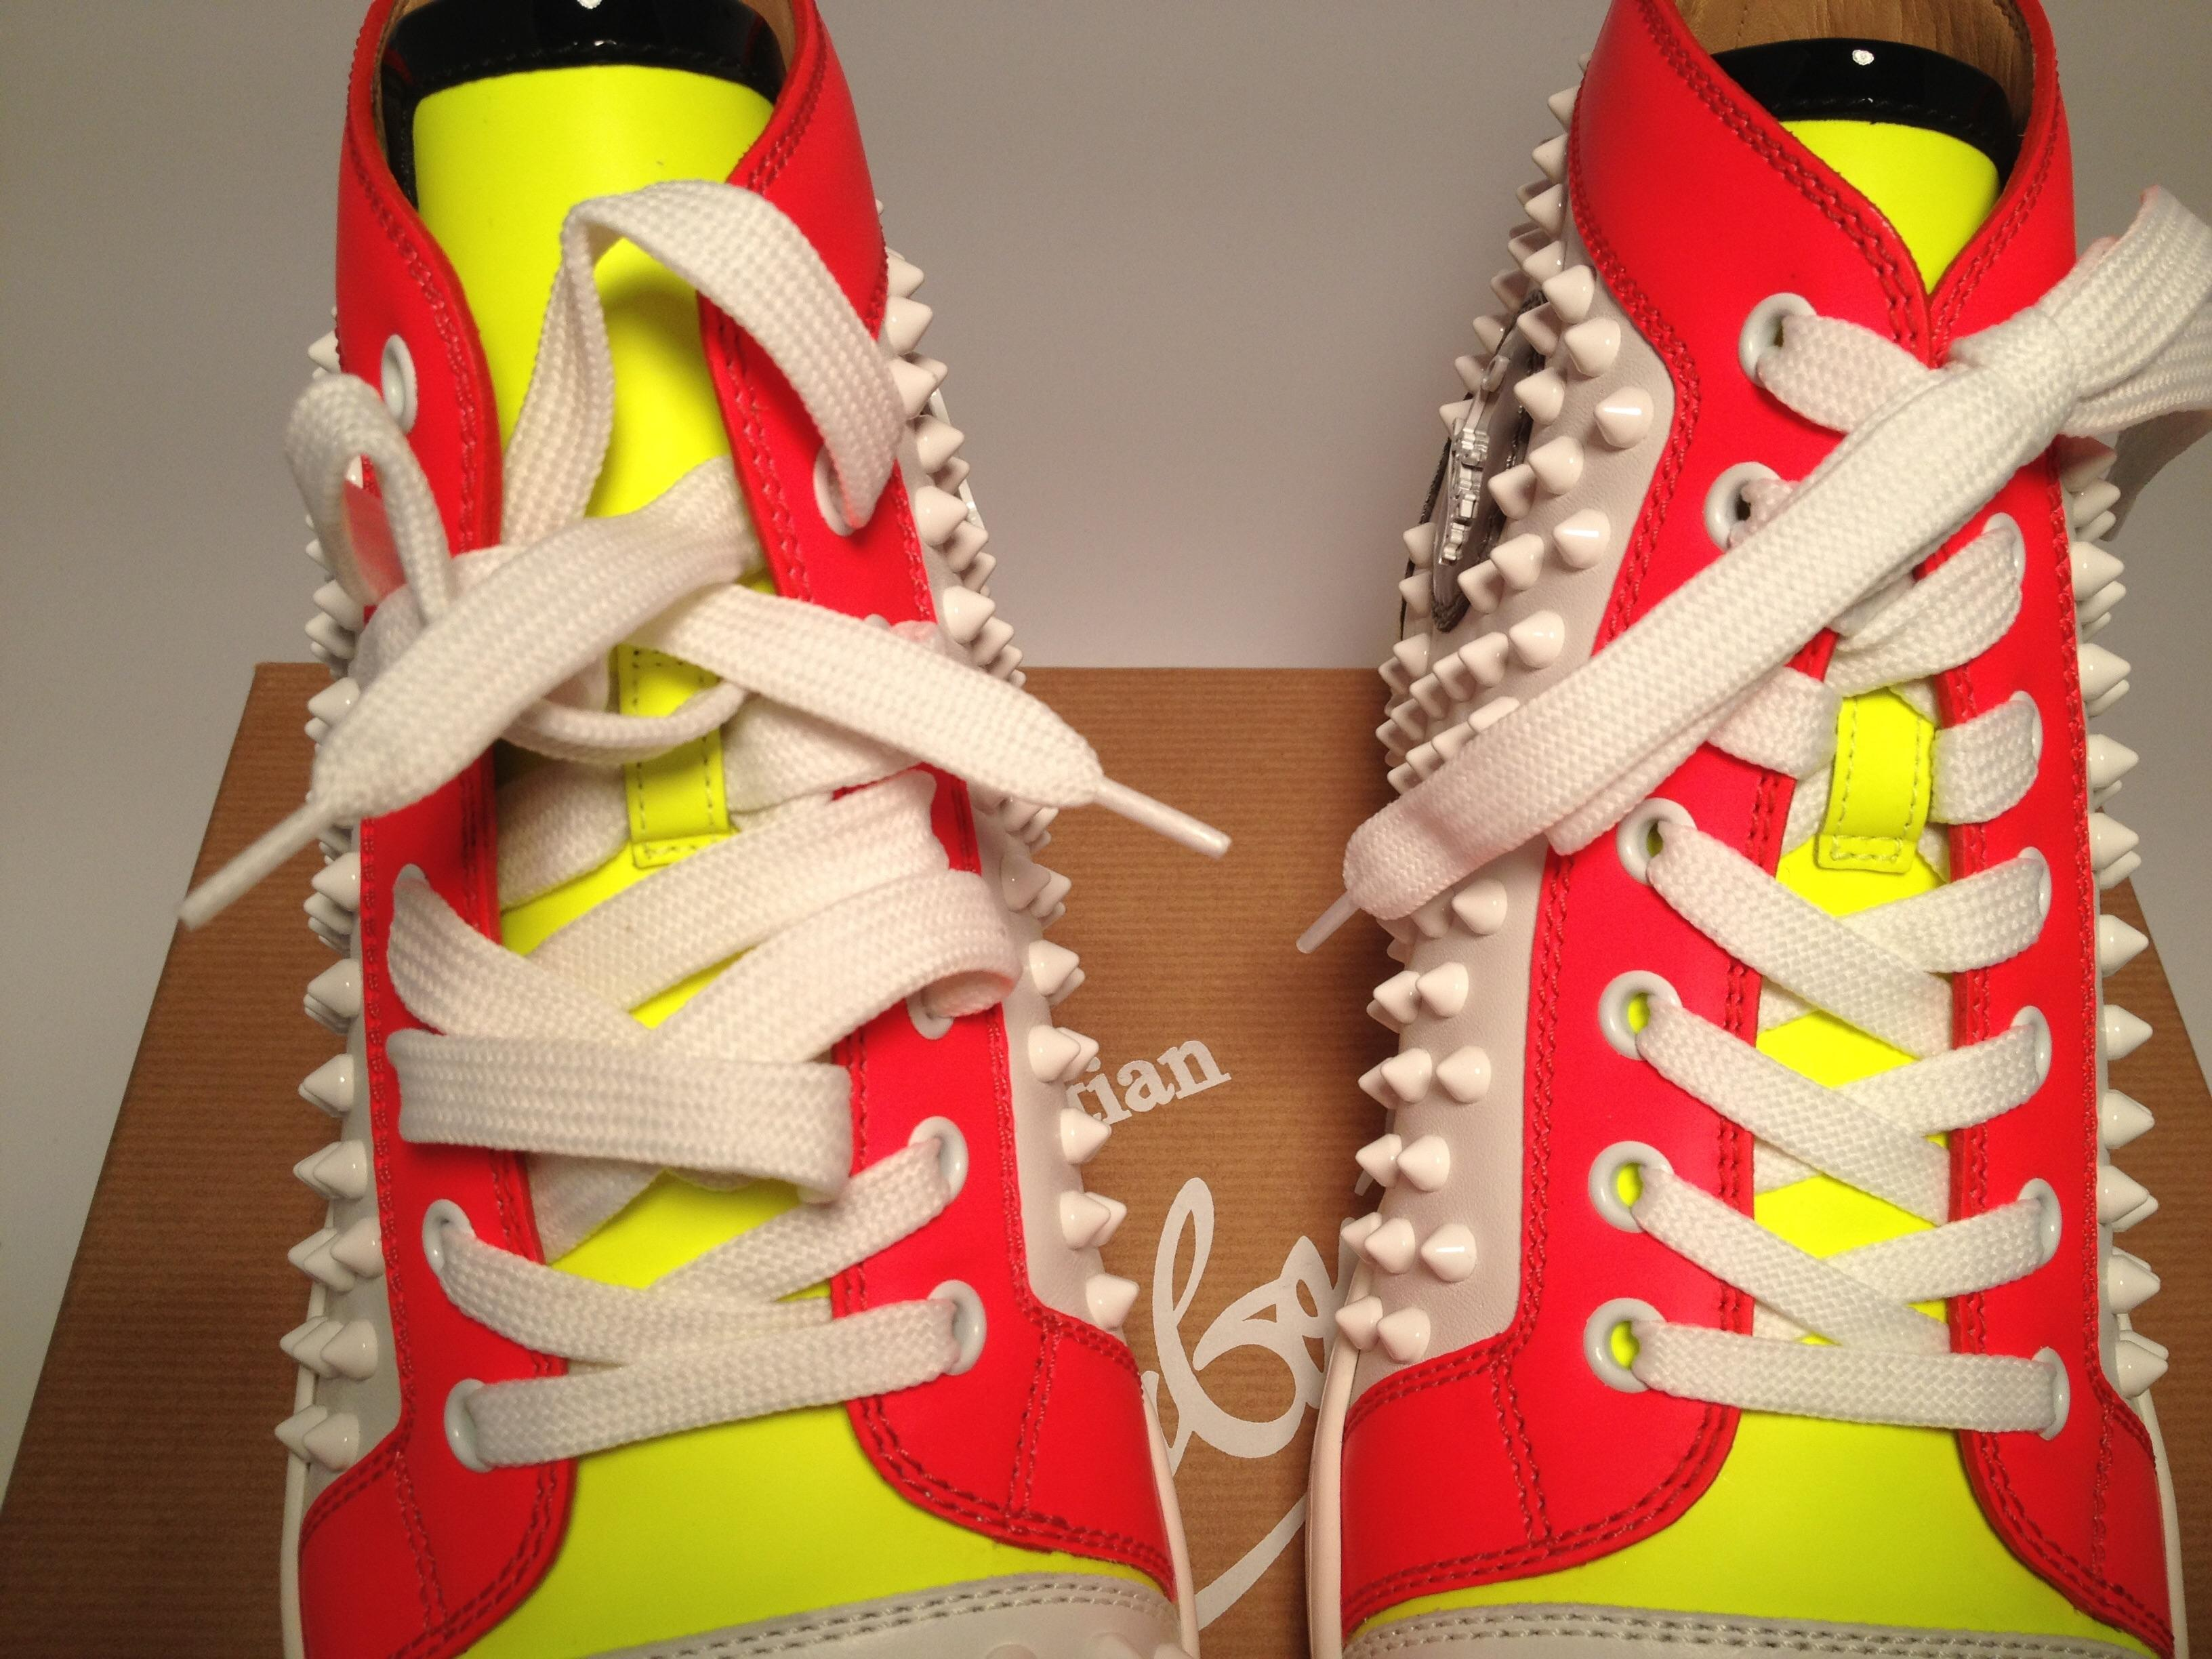 a362b6083 ... Christian Louboutin White Louis Spike Spike Spike Rantus High Top  Sneakers 37  285 Sneakers Size ...